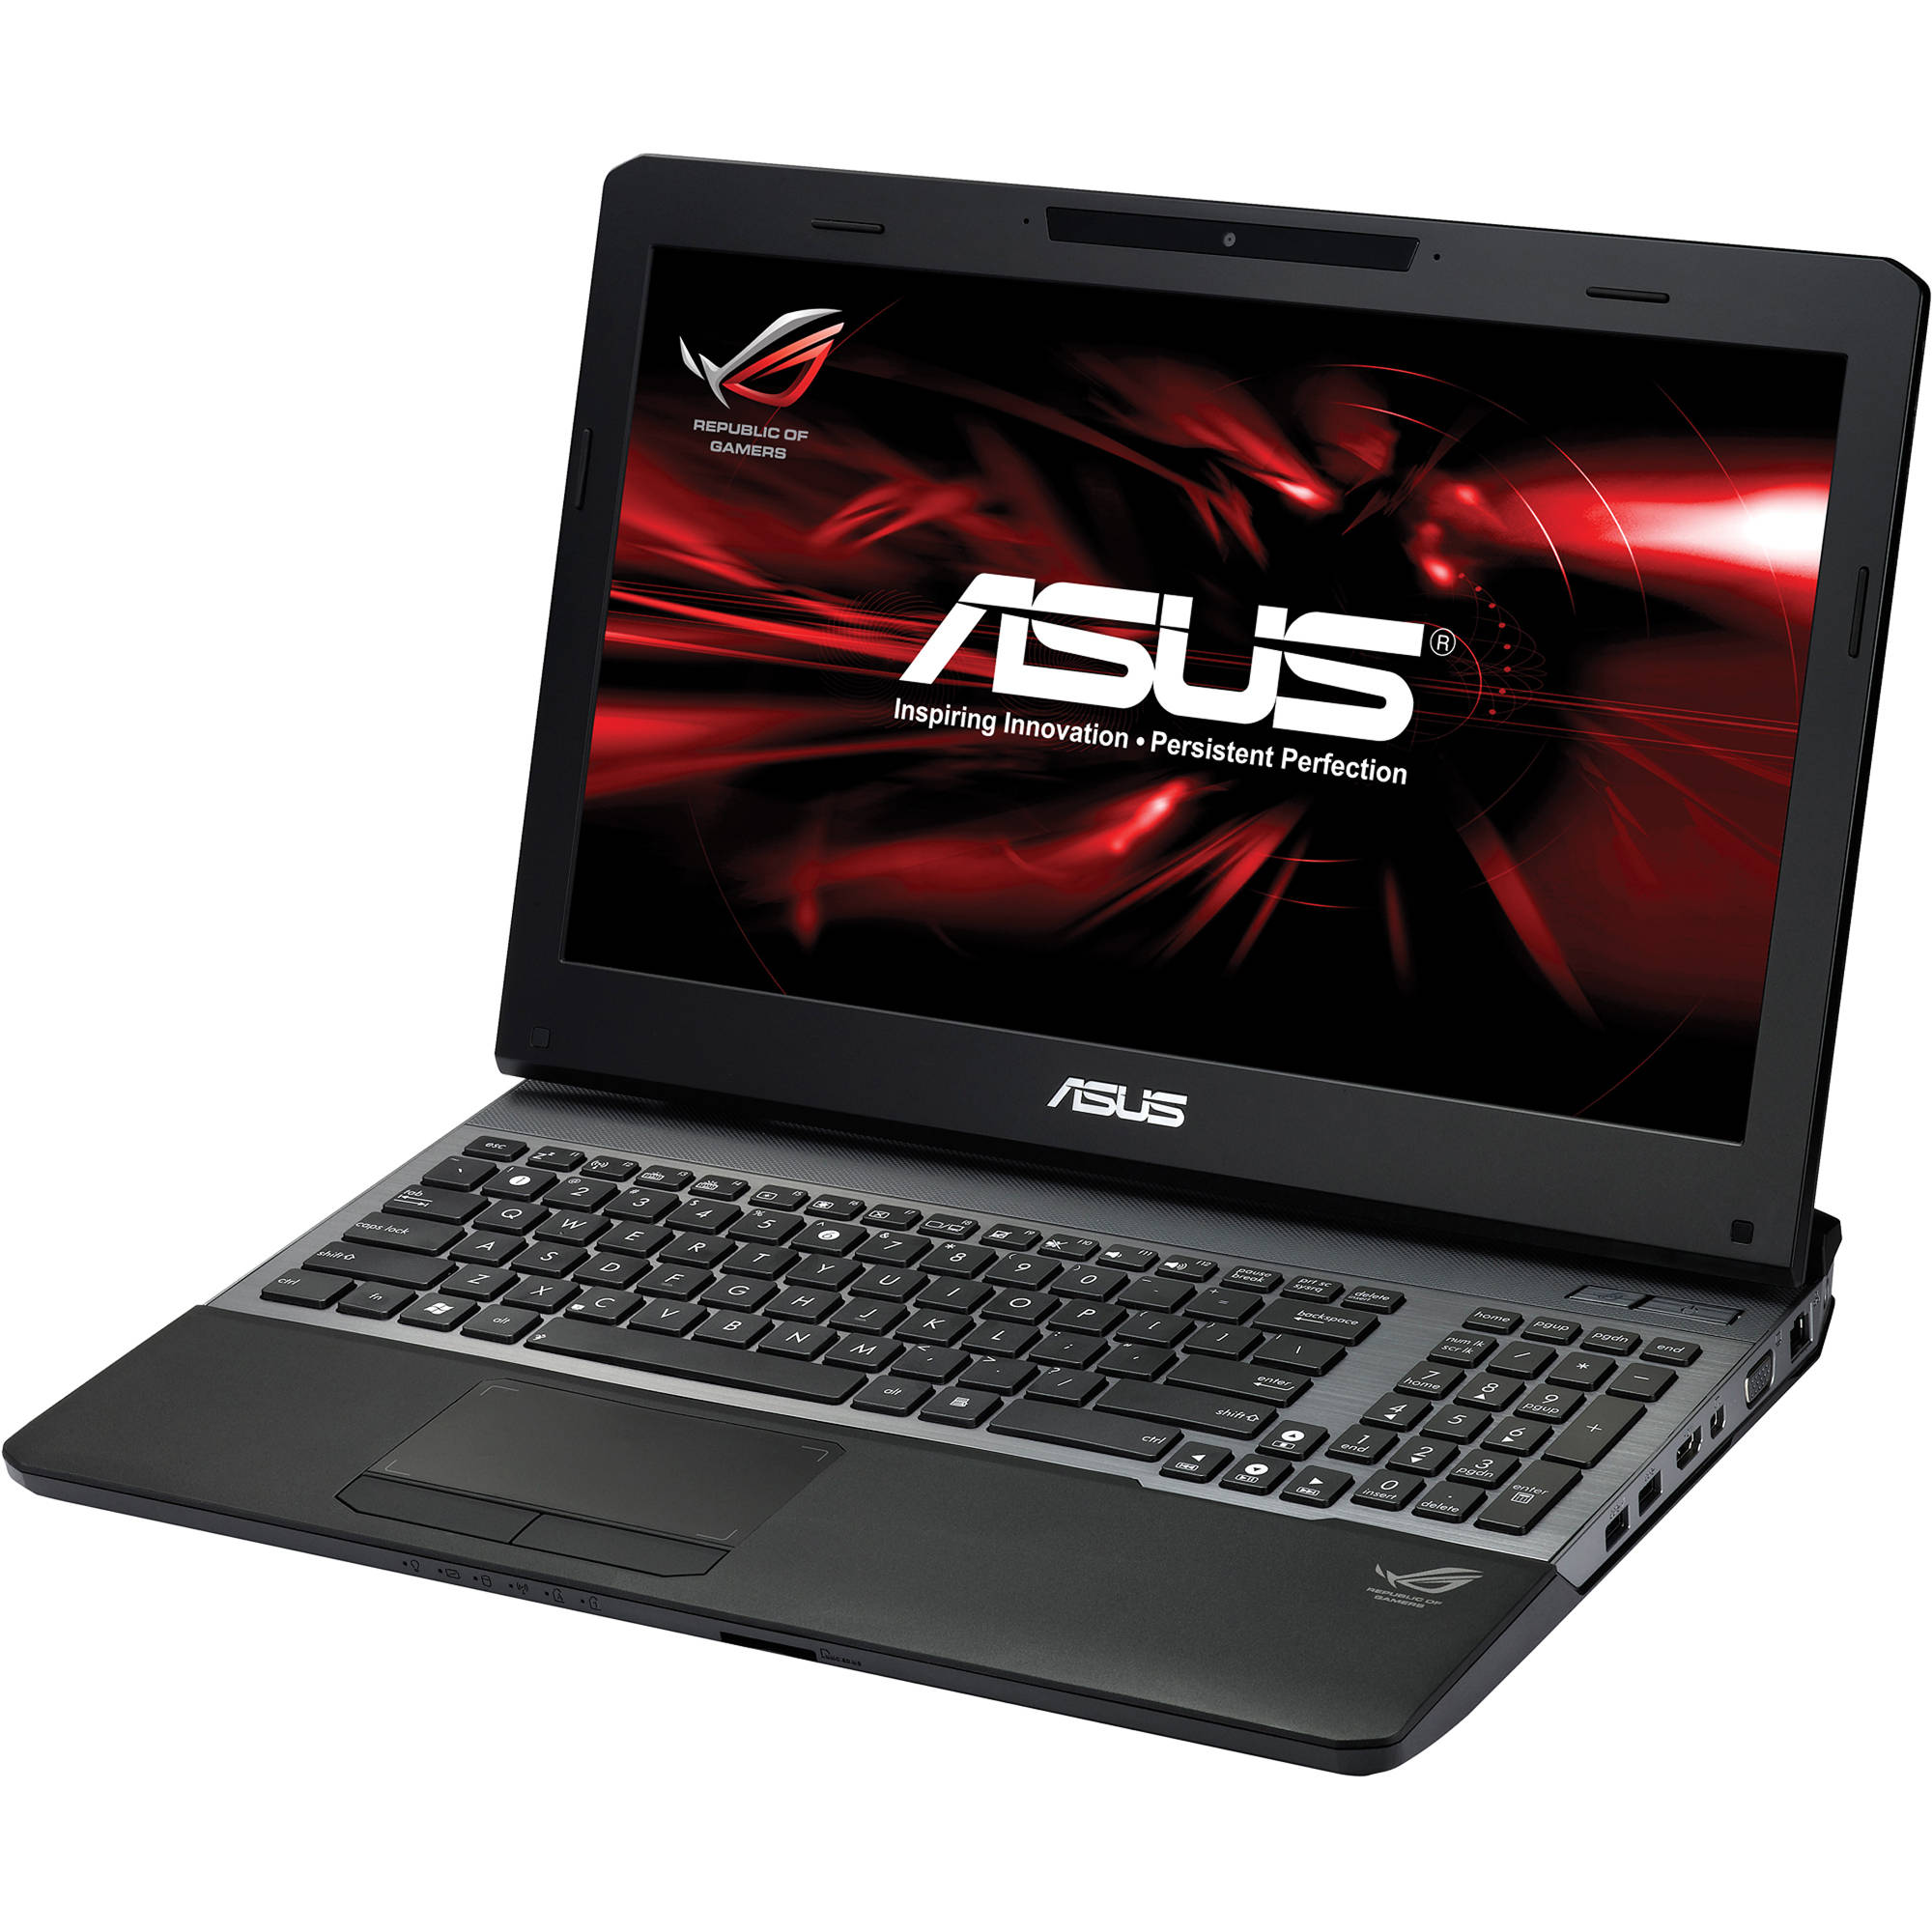 ASUS G55VW TOUCHPAD WINDOWS 8 DRIVERS DOWNLOAD